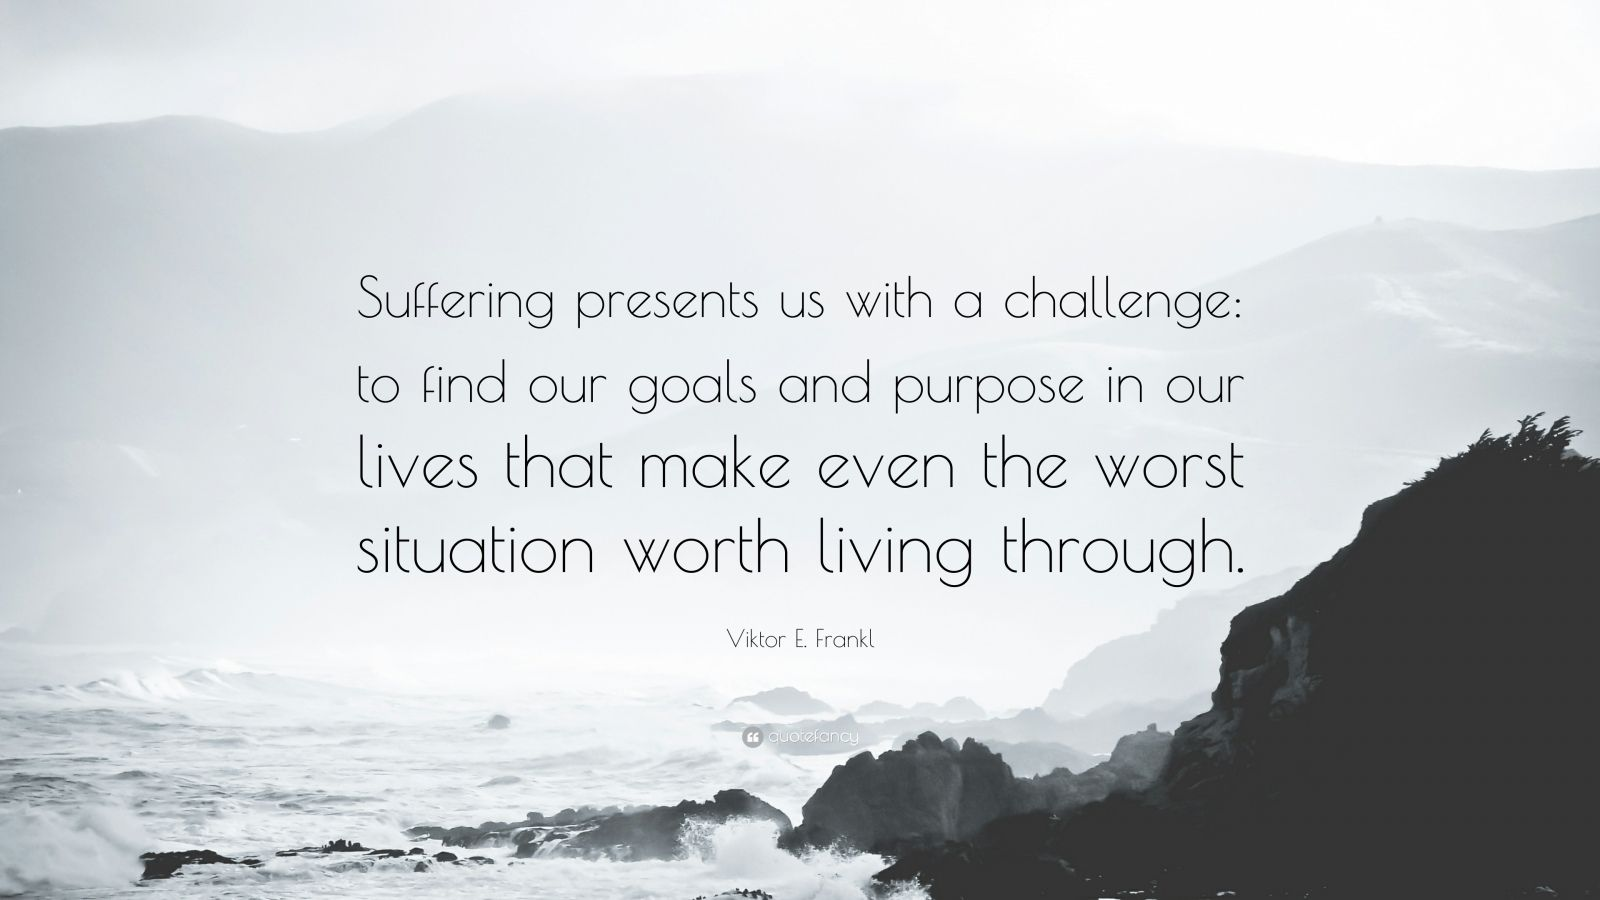 """Viktor E. Frankl Quote: """"Suffering presents us with a challenge: to find our goals and purpose in our lives that make even the worst situation worth living through."""""""